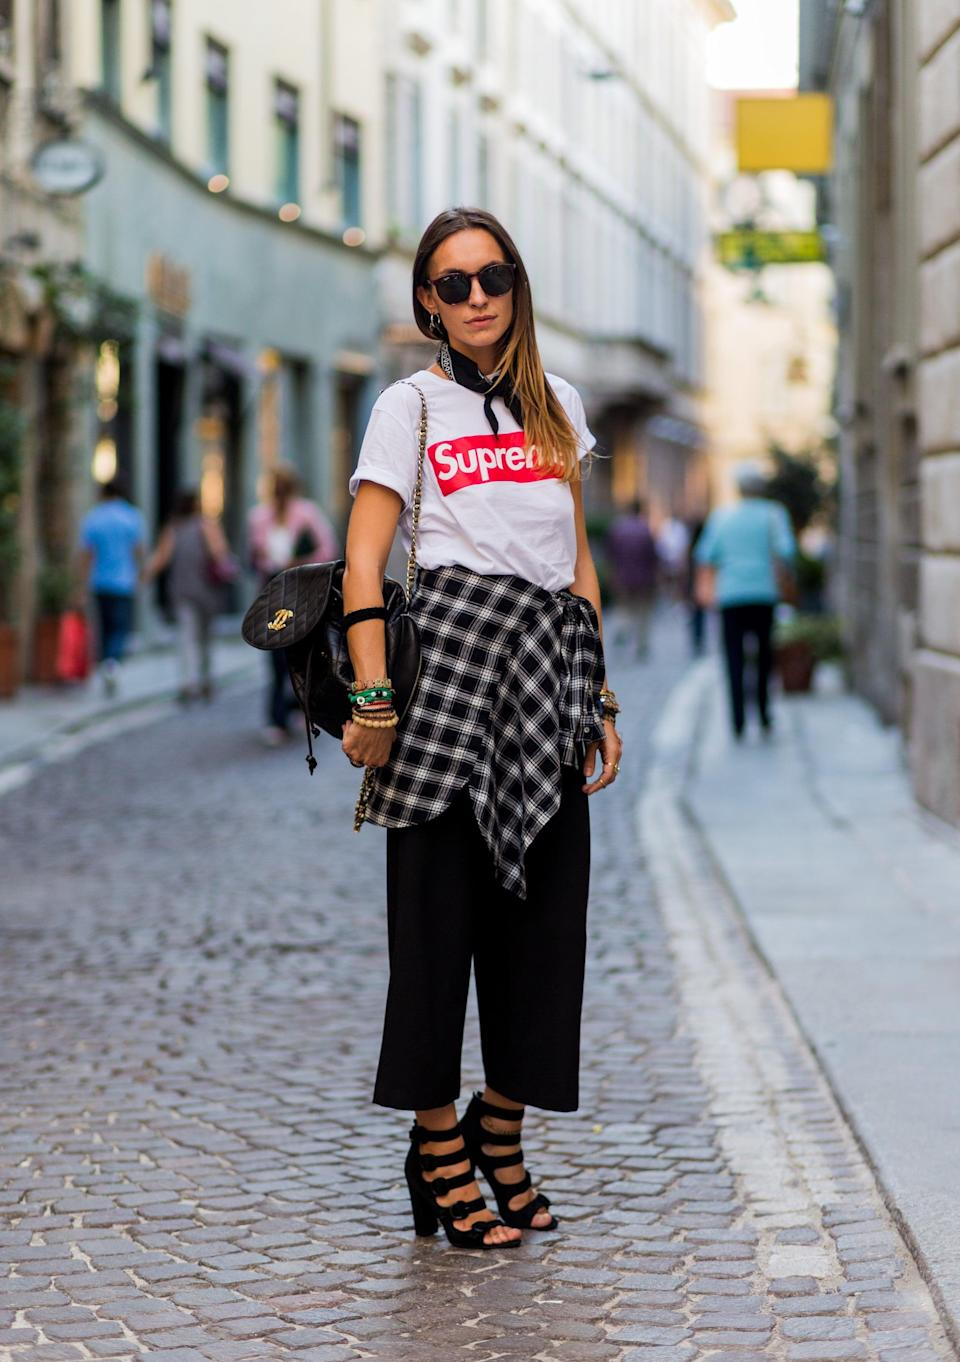 <p>A logo tee gets a lift with statement sandals. </p>